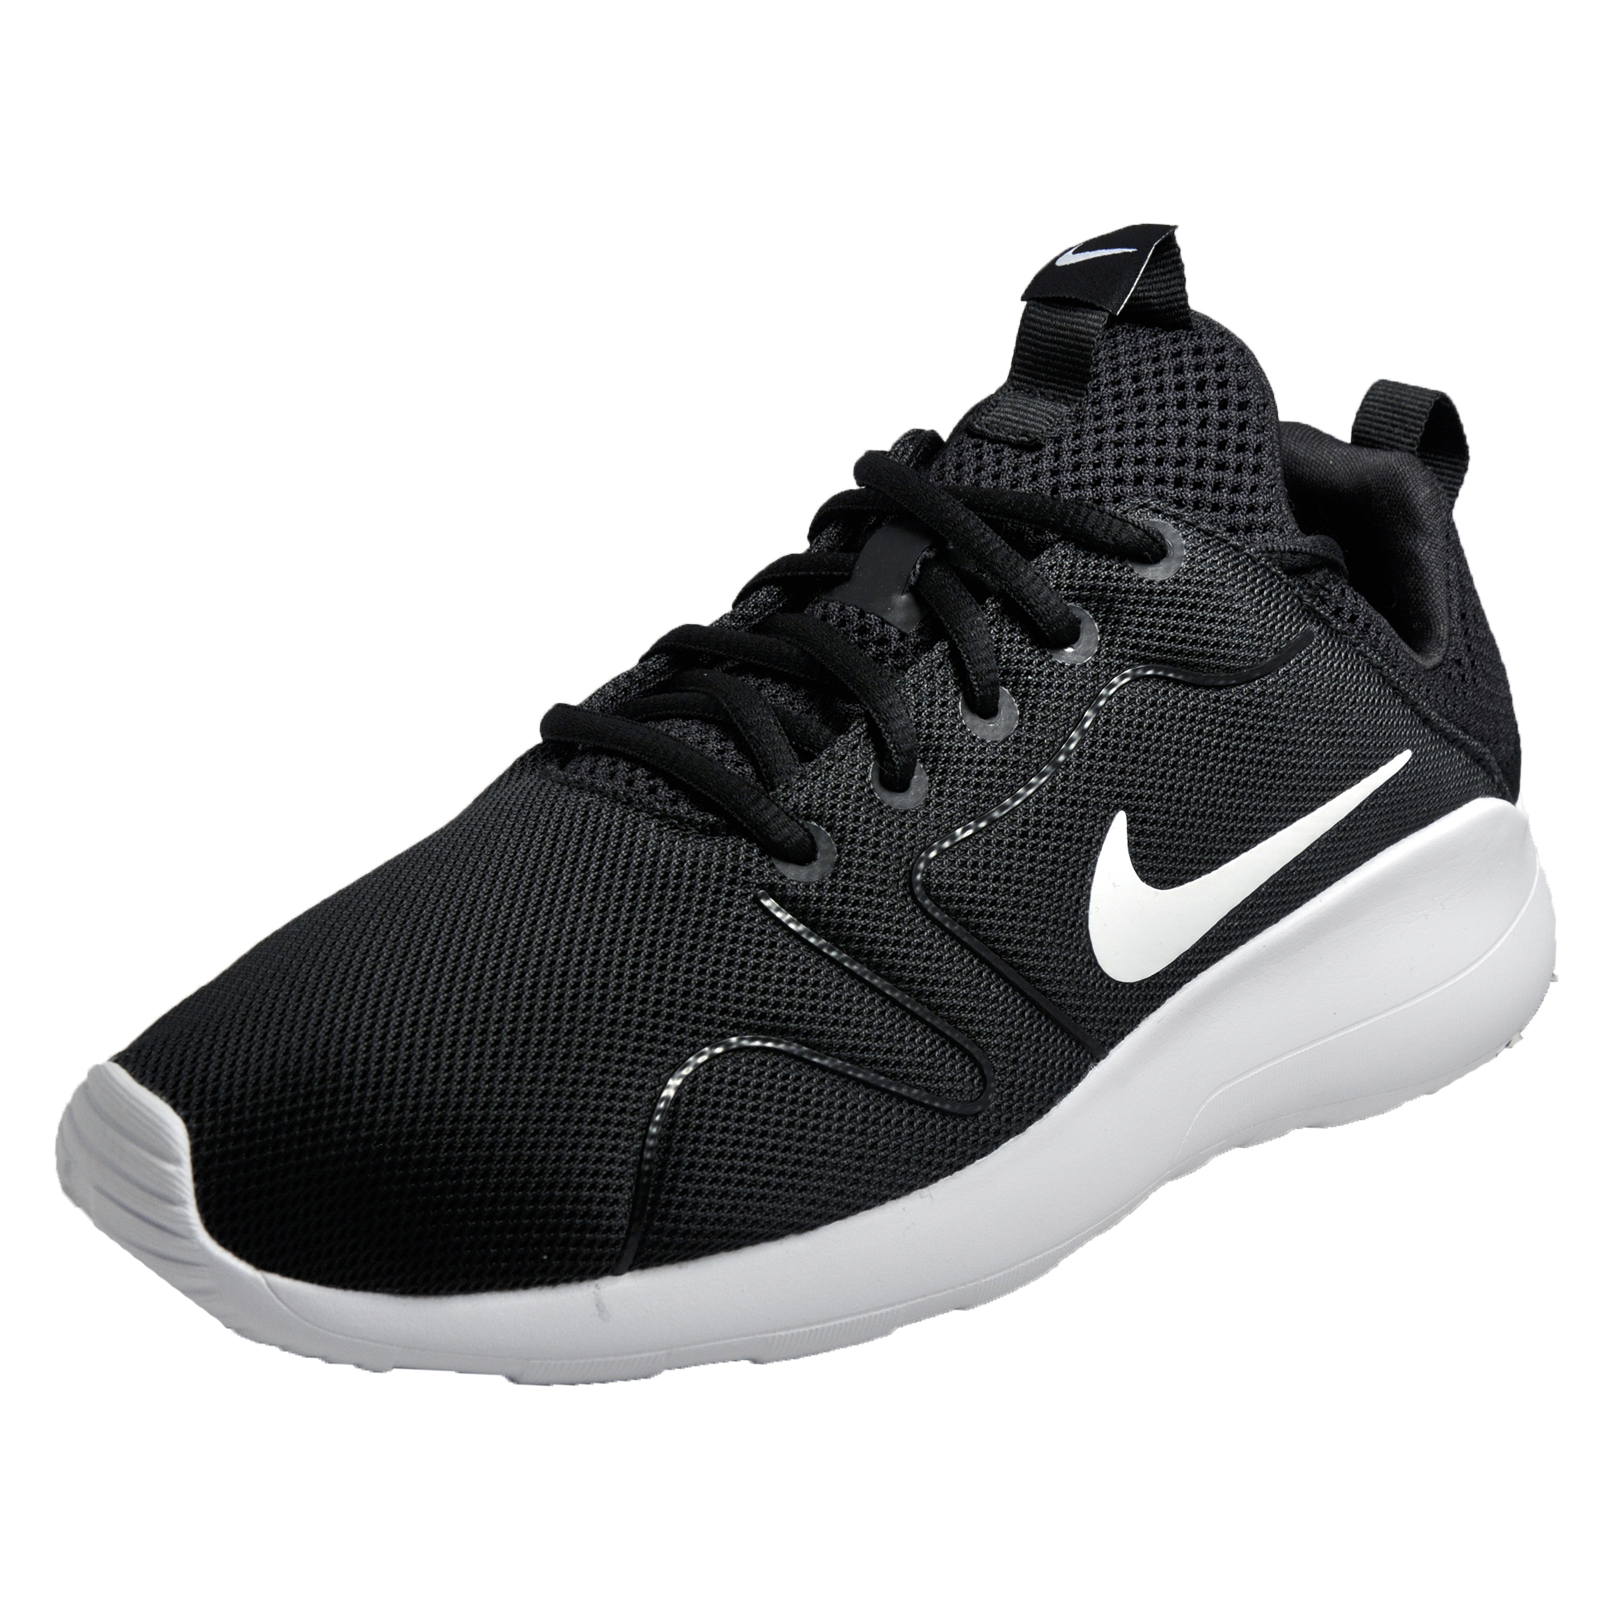 Nike Kaishi 2.0 Mens Running Shoes Fitness Gym Workout Trainers Black | EBay